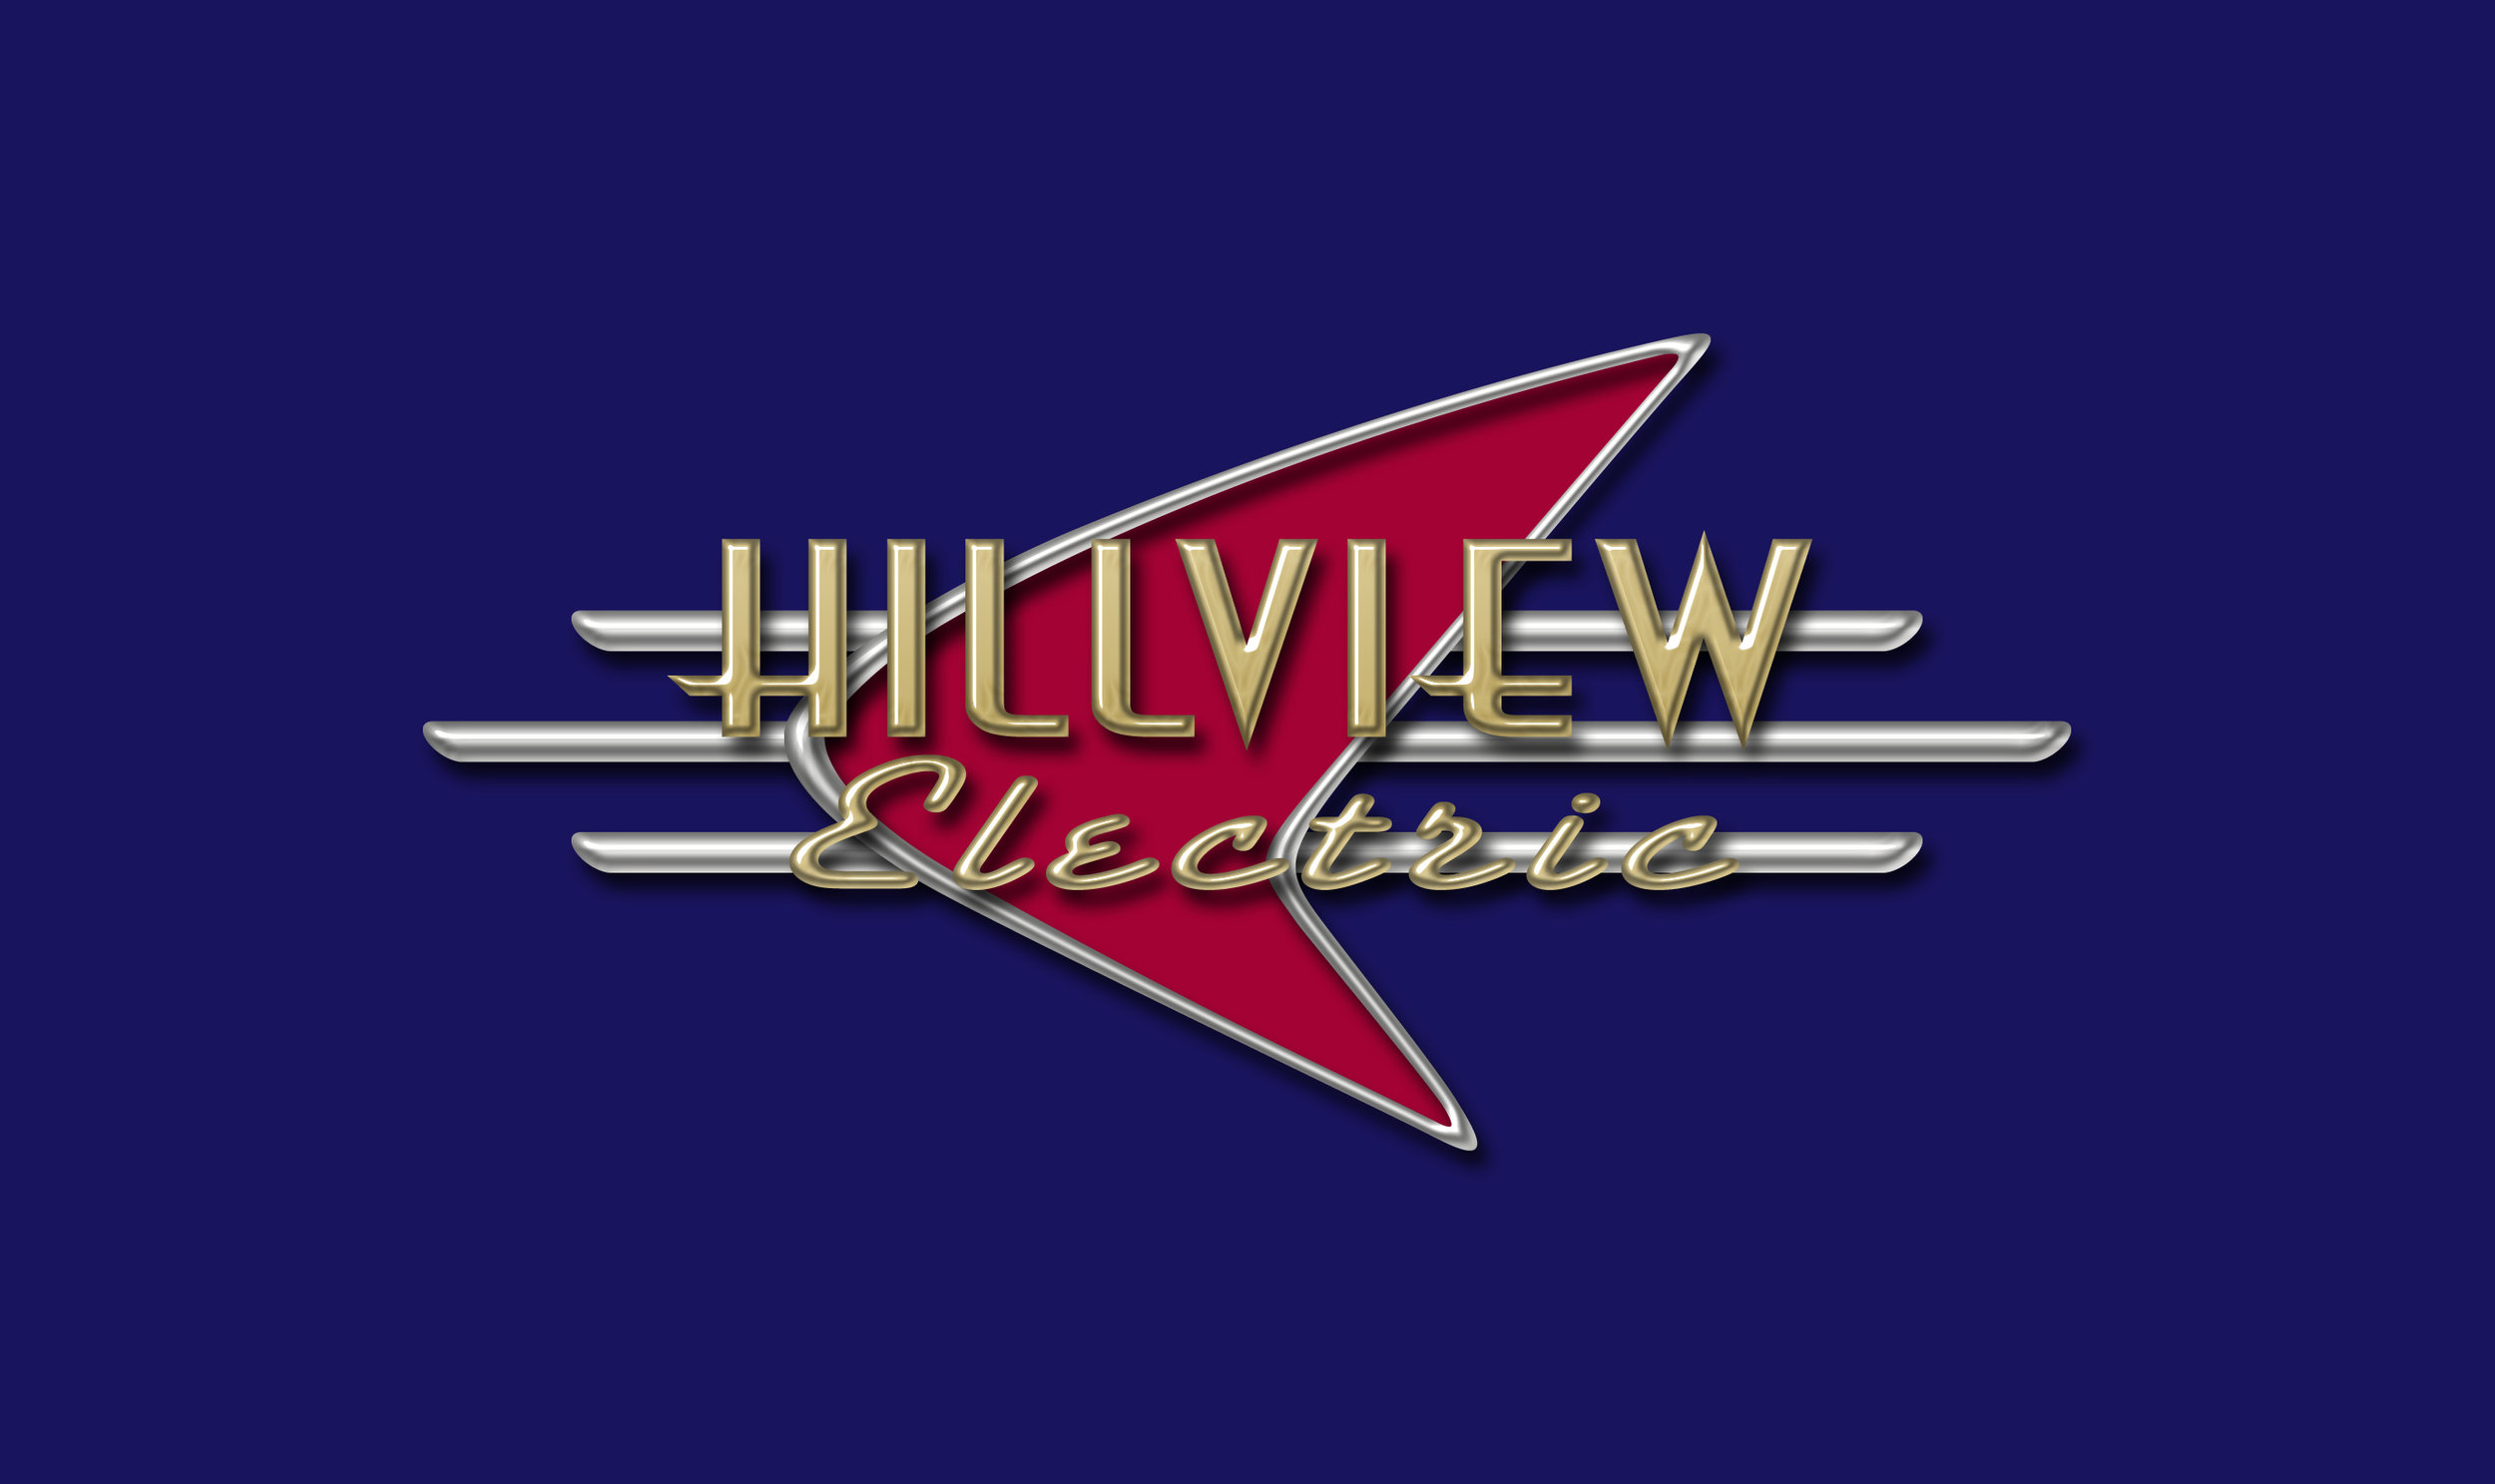 Hillview Electric.jpg